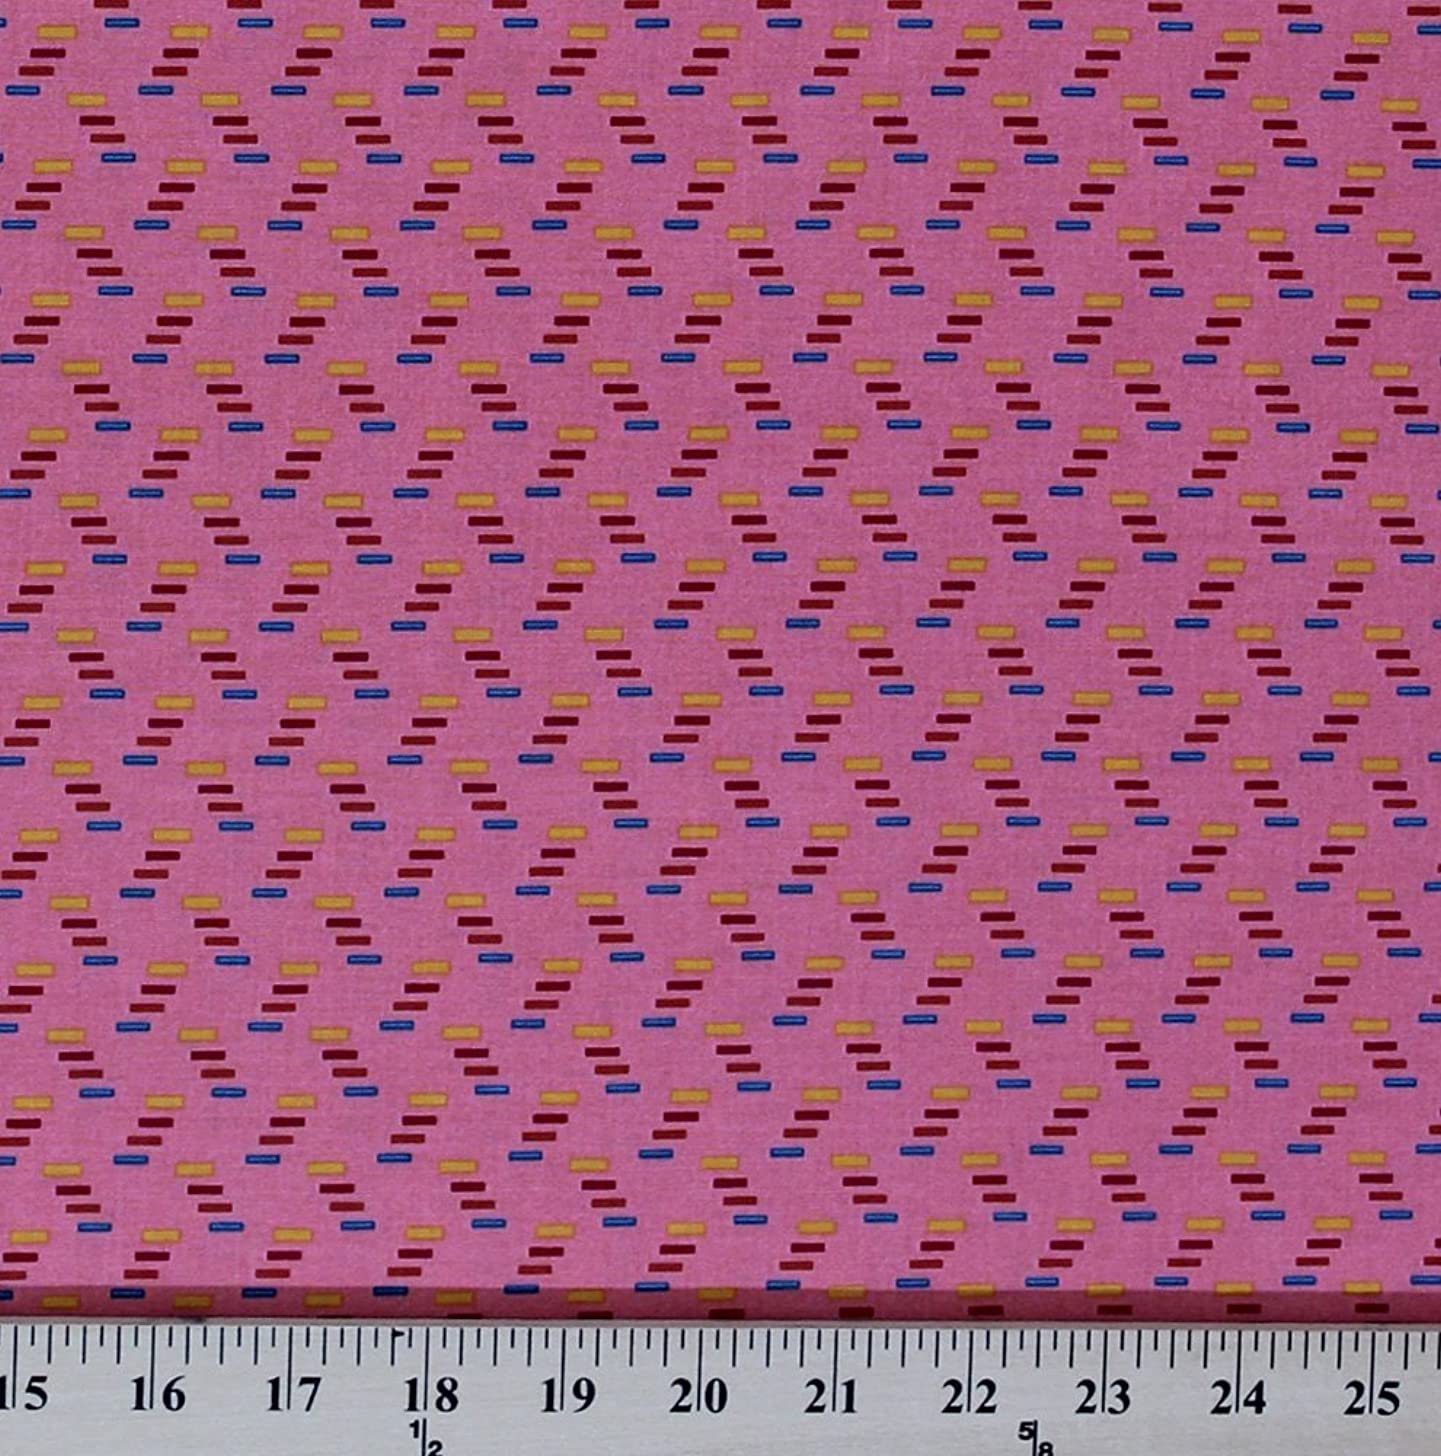 Cotton Anna Maria Horner Dowry Cracking Codes Zig Zag Petal Pink Cotton Fabric Print by The Yard (PWAH064.Petal)